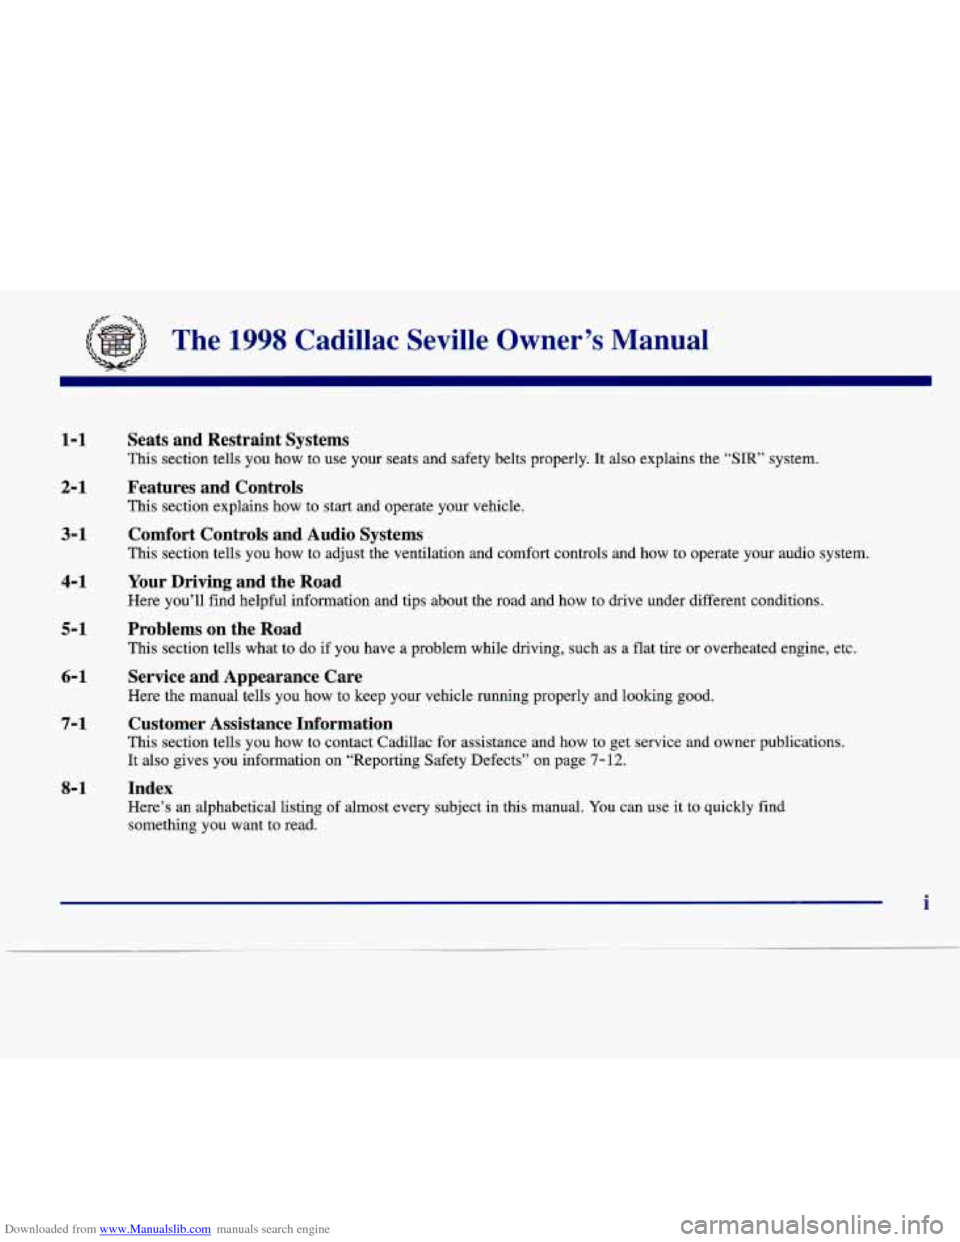 CADILLAC SEVILLE 1998 4.G Owners Manual, Page 6